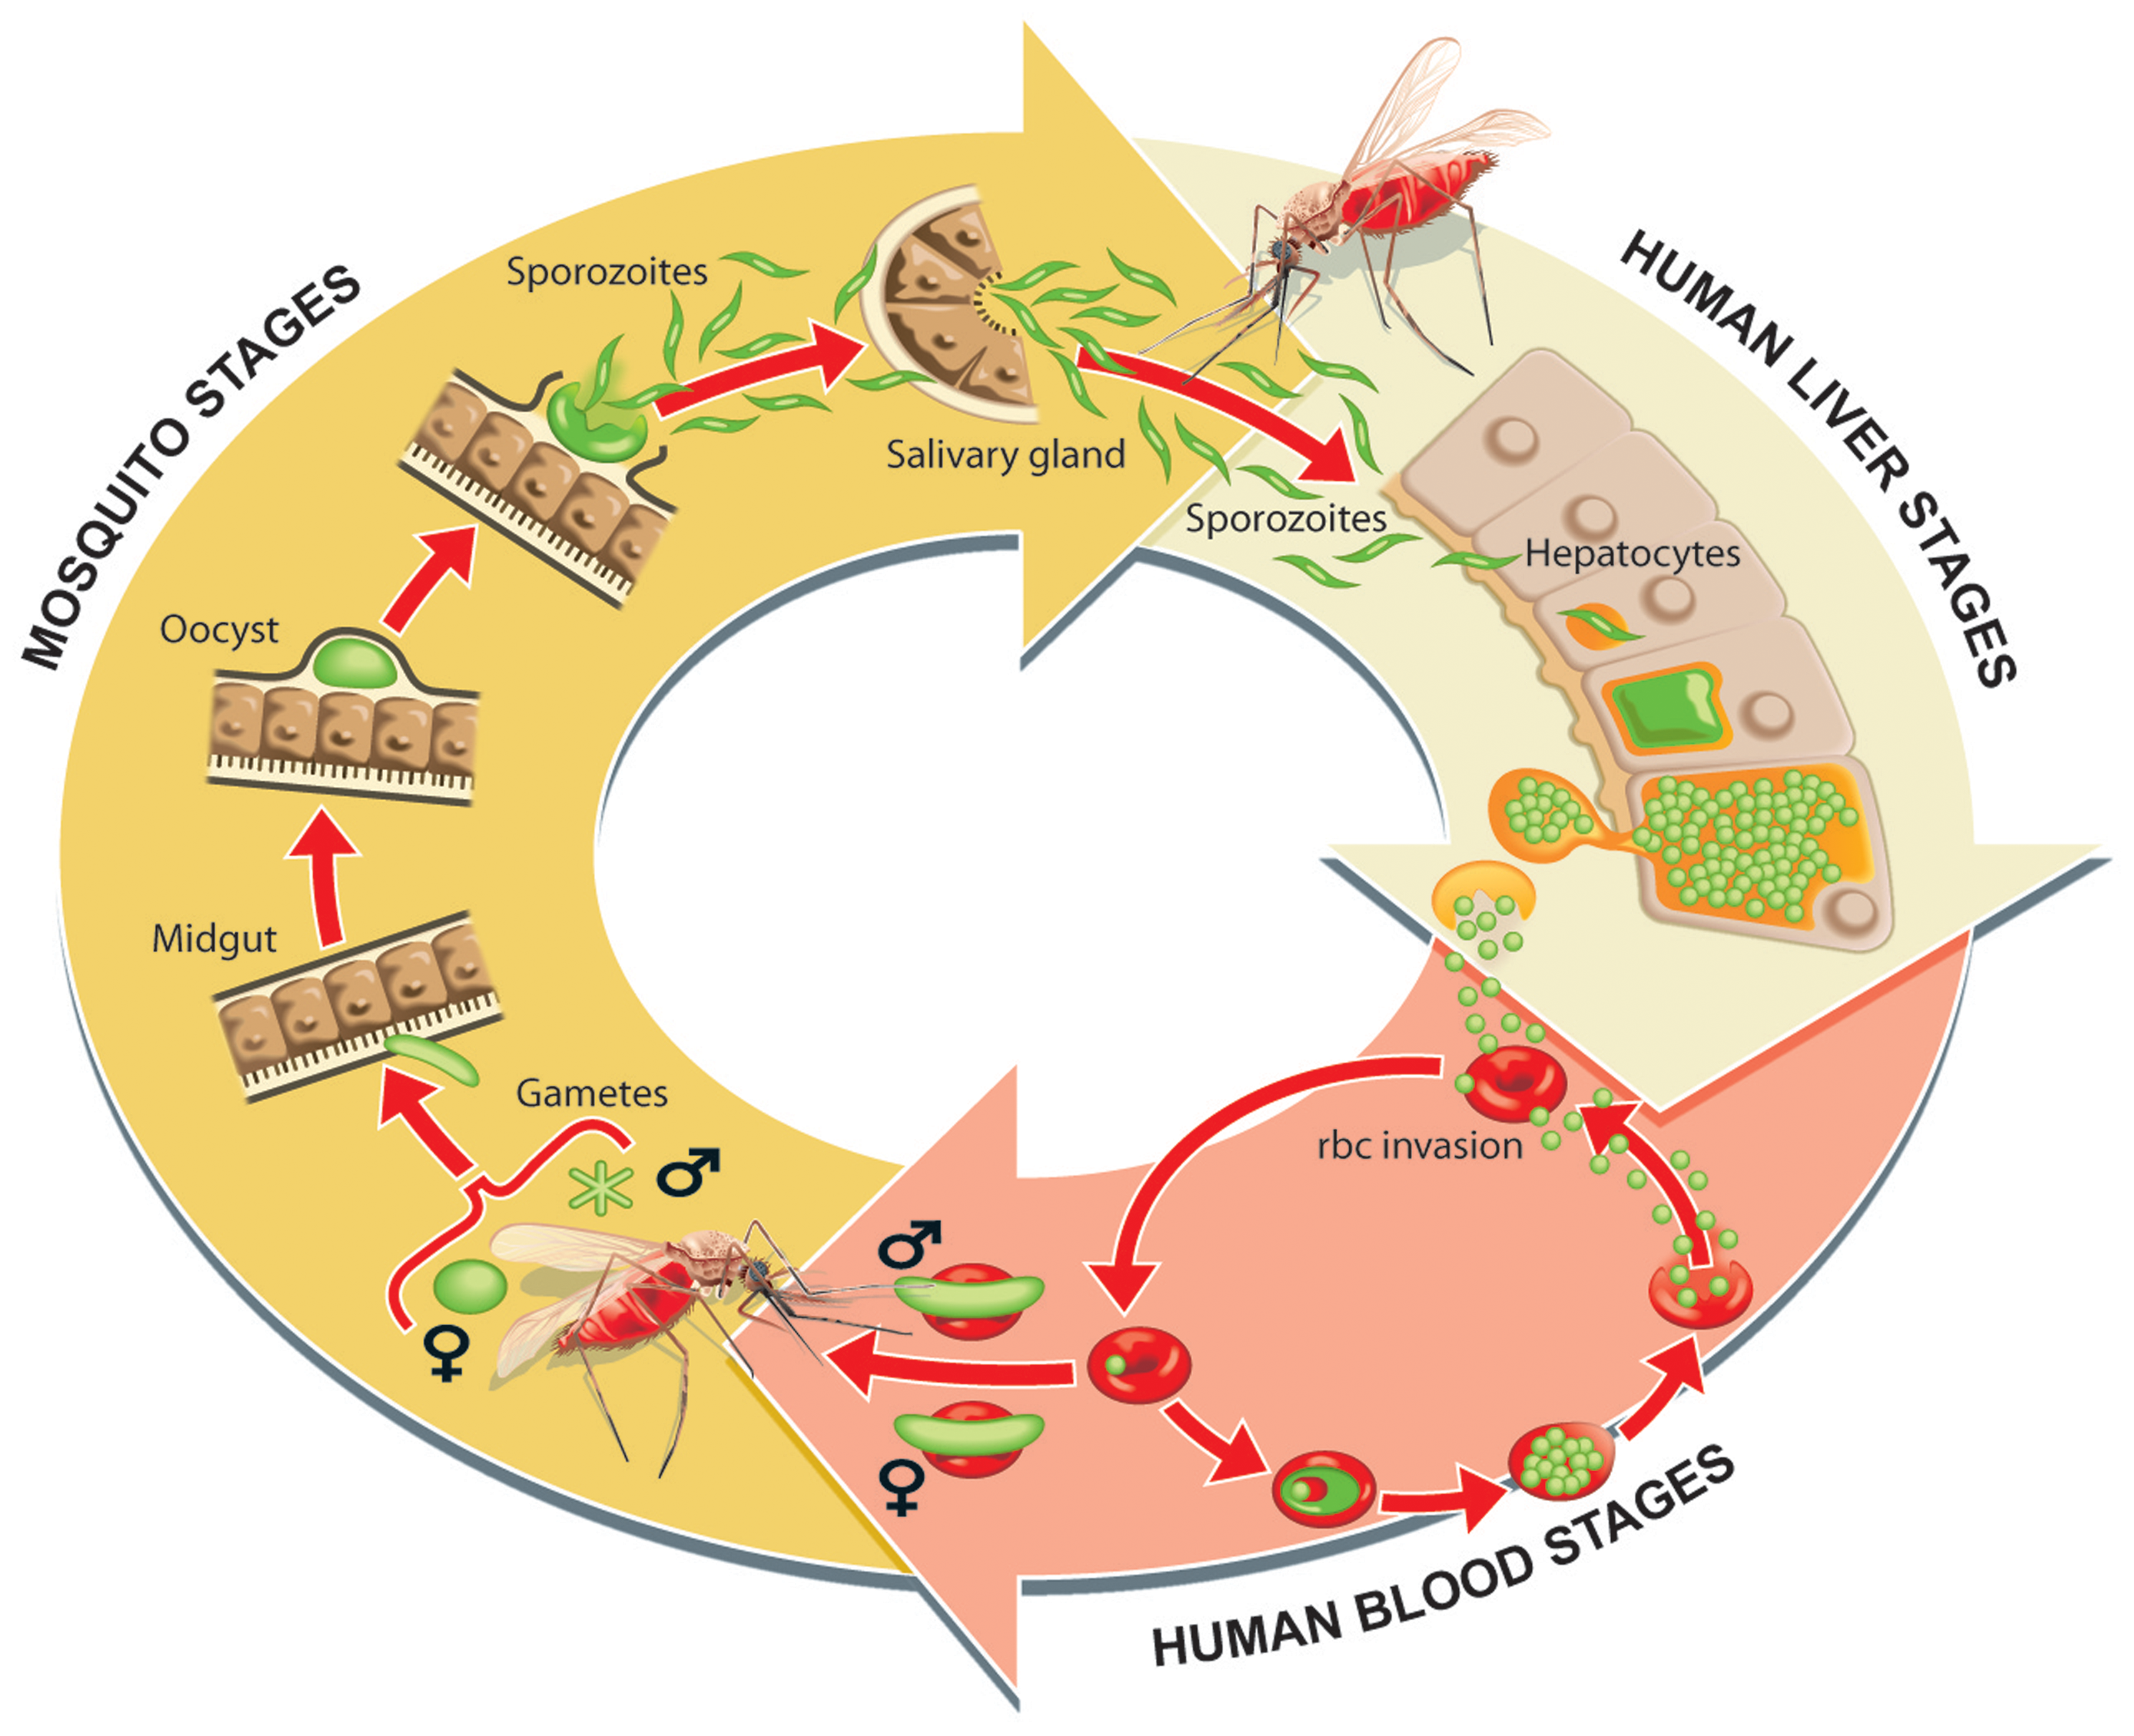 Parasite life cycle in the human host and mosquito vector.